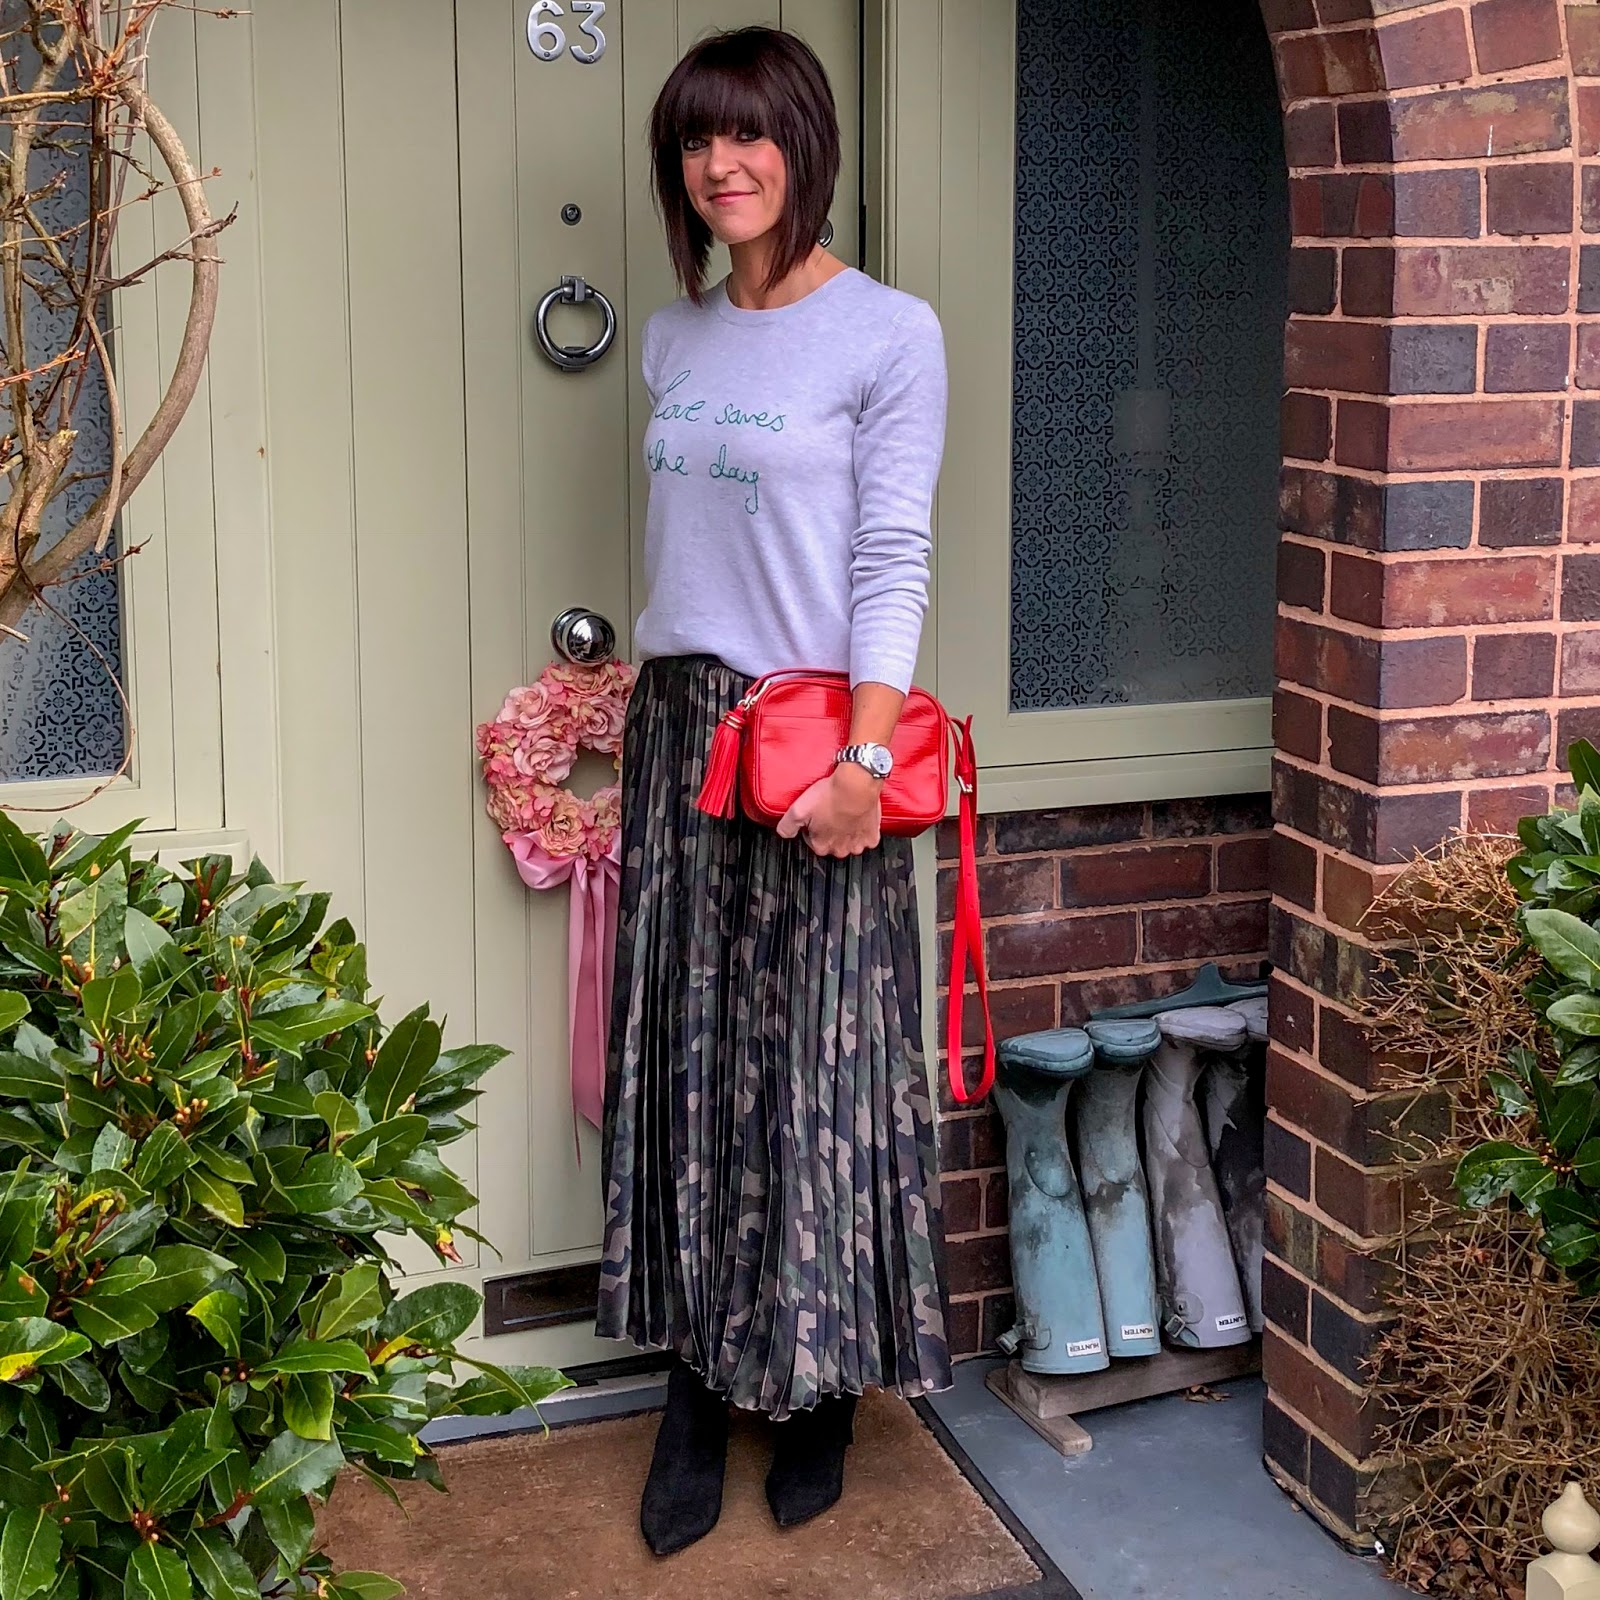 my midlife fashion, hush love saves the day crew neck jumper, uterque mock croc cross body bag, asos camouflage pleated satin maxi skirt, marks and spencer side zip stiletto heel ankle boots